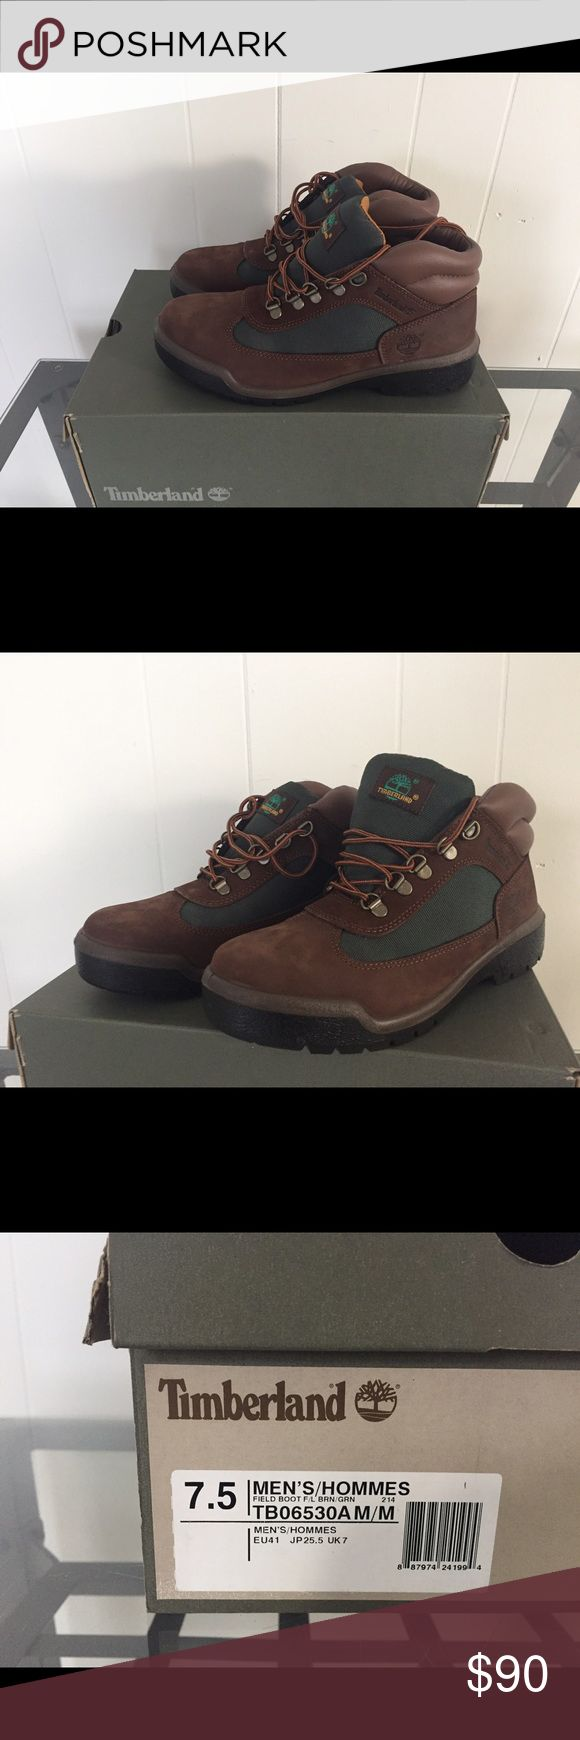 Timberland Field Boots brand new in box size 7.5 Selling brand new in box men's Timberland Field Boots in a size 7.5. Never worn only tried on Timberland Shoes Boots